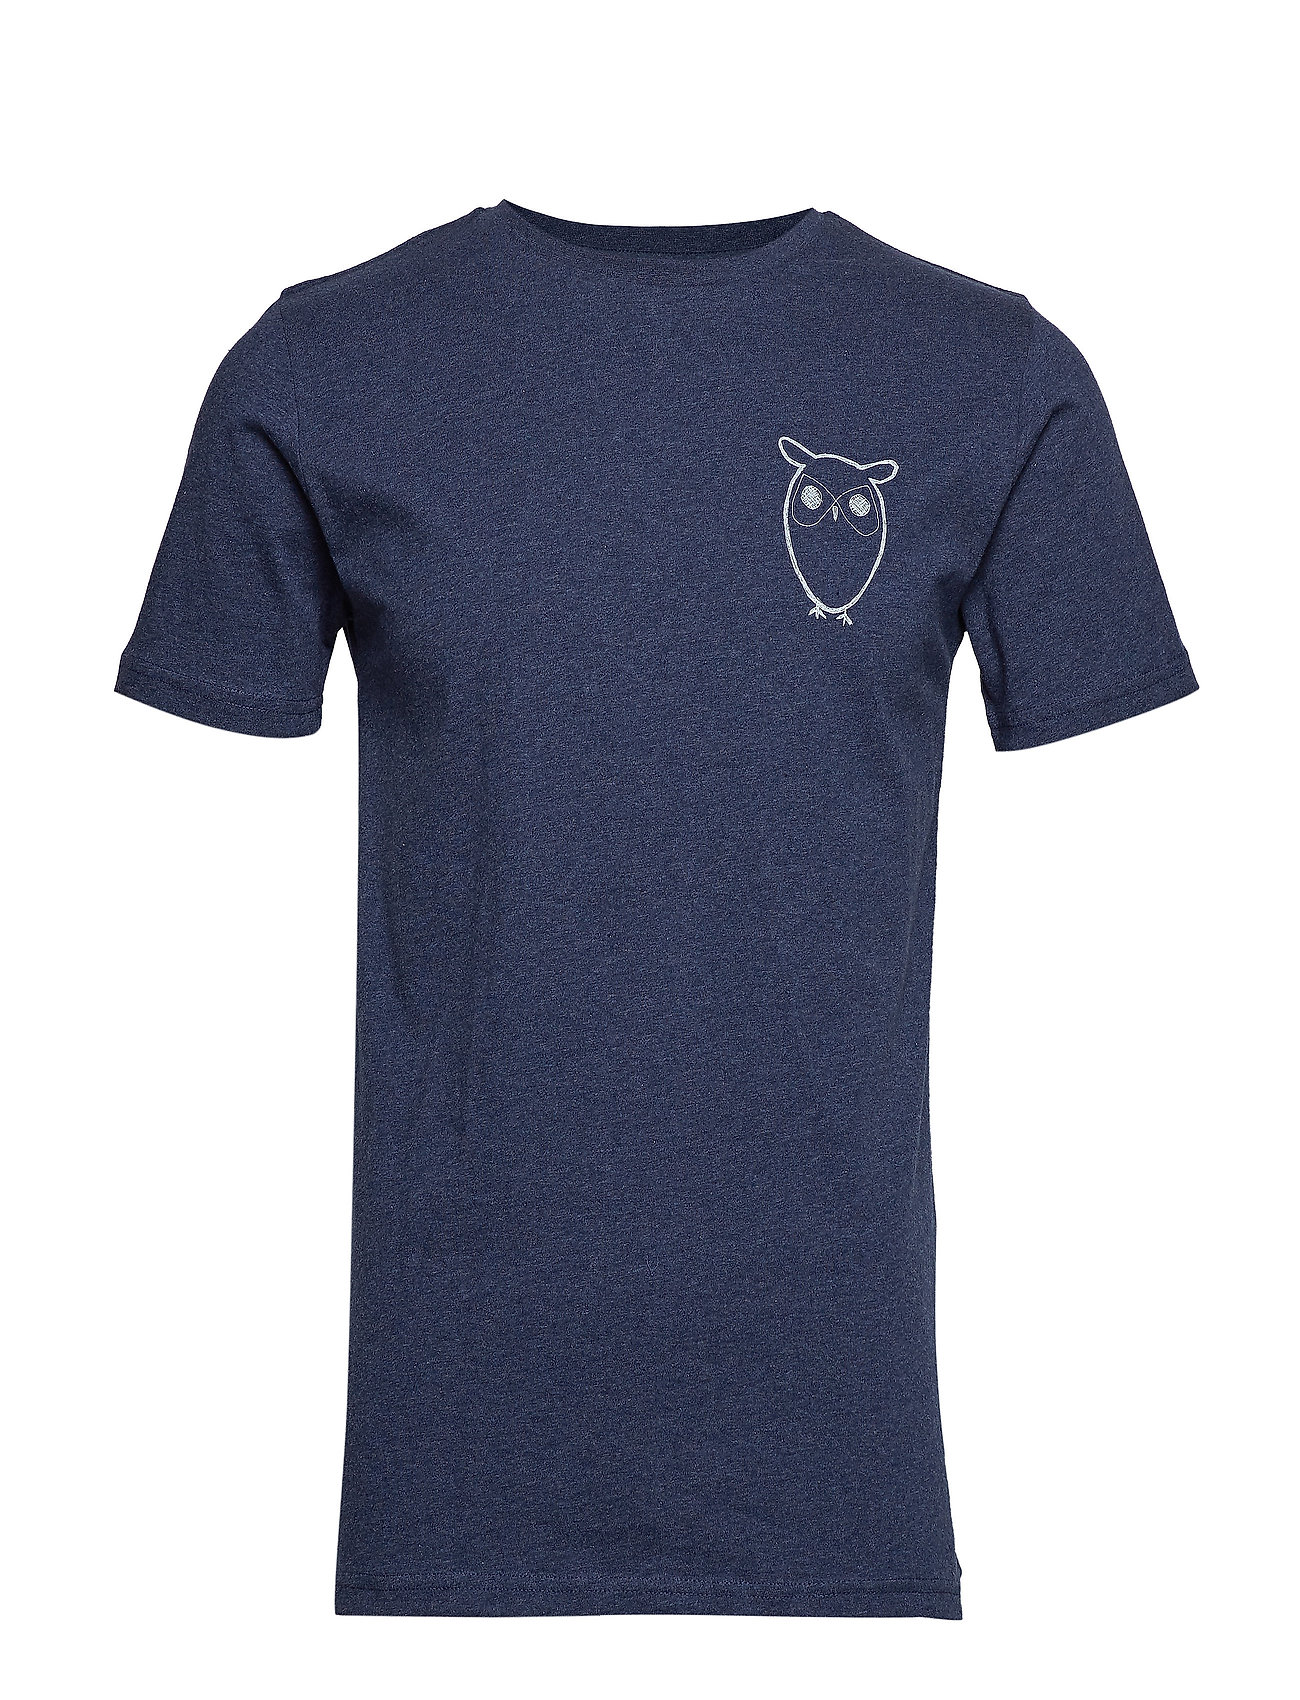 Image of T-Shirt With Owl Chest Logo - Gots T-shirt Blå Knowledge Cotton Apparel (3169766239)